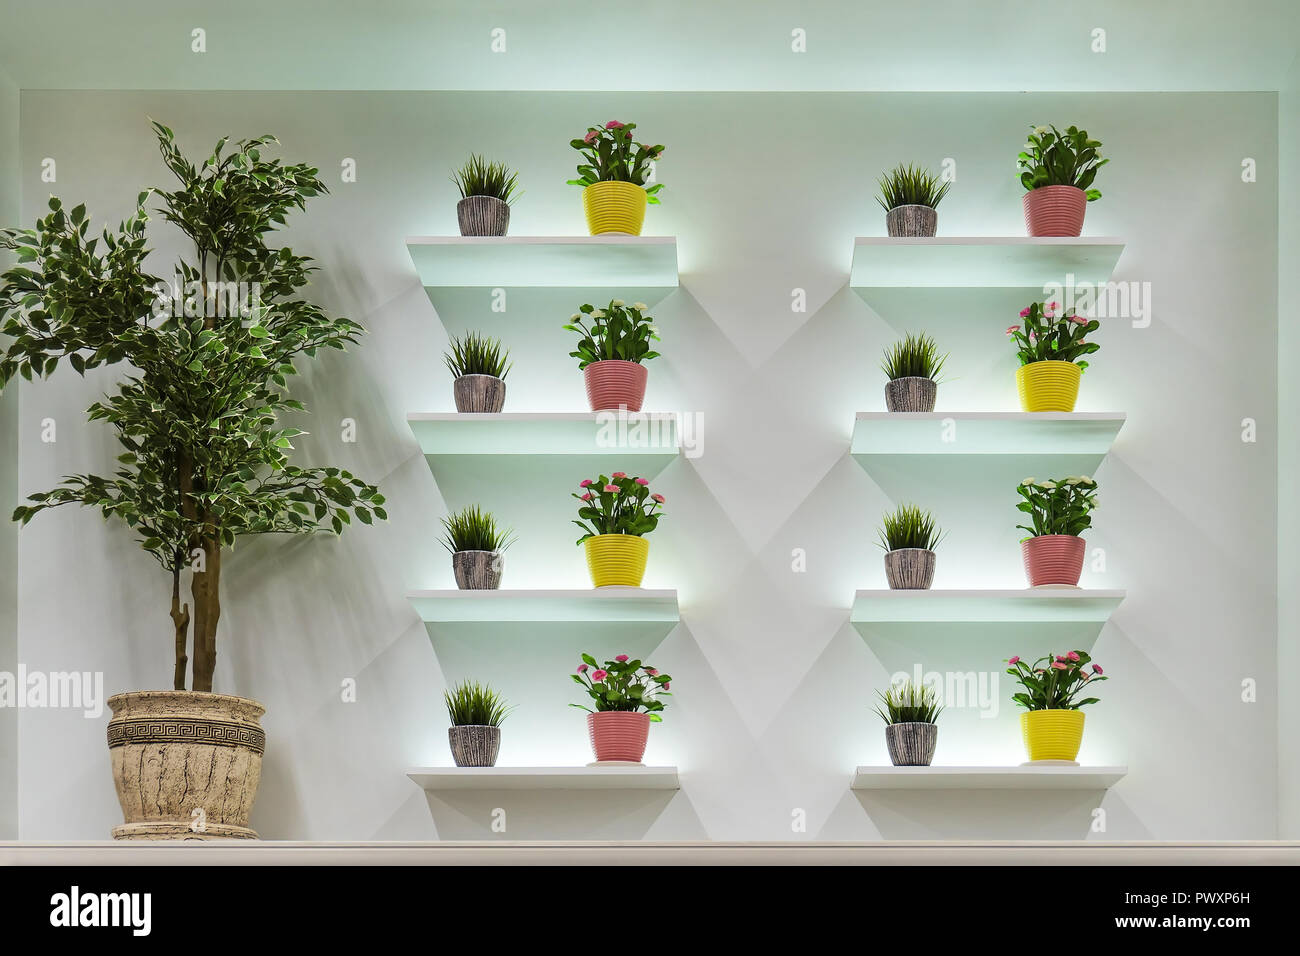 Etagere Pour Plantes Interieures shelves on wall in bedroom photos & shelves on wall in